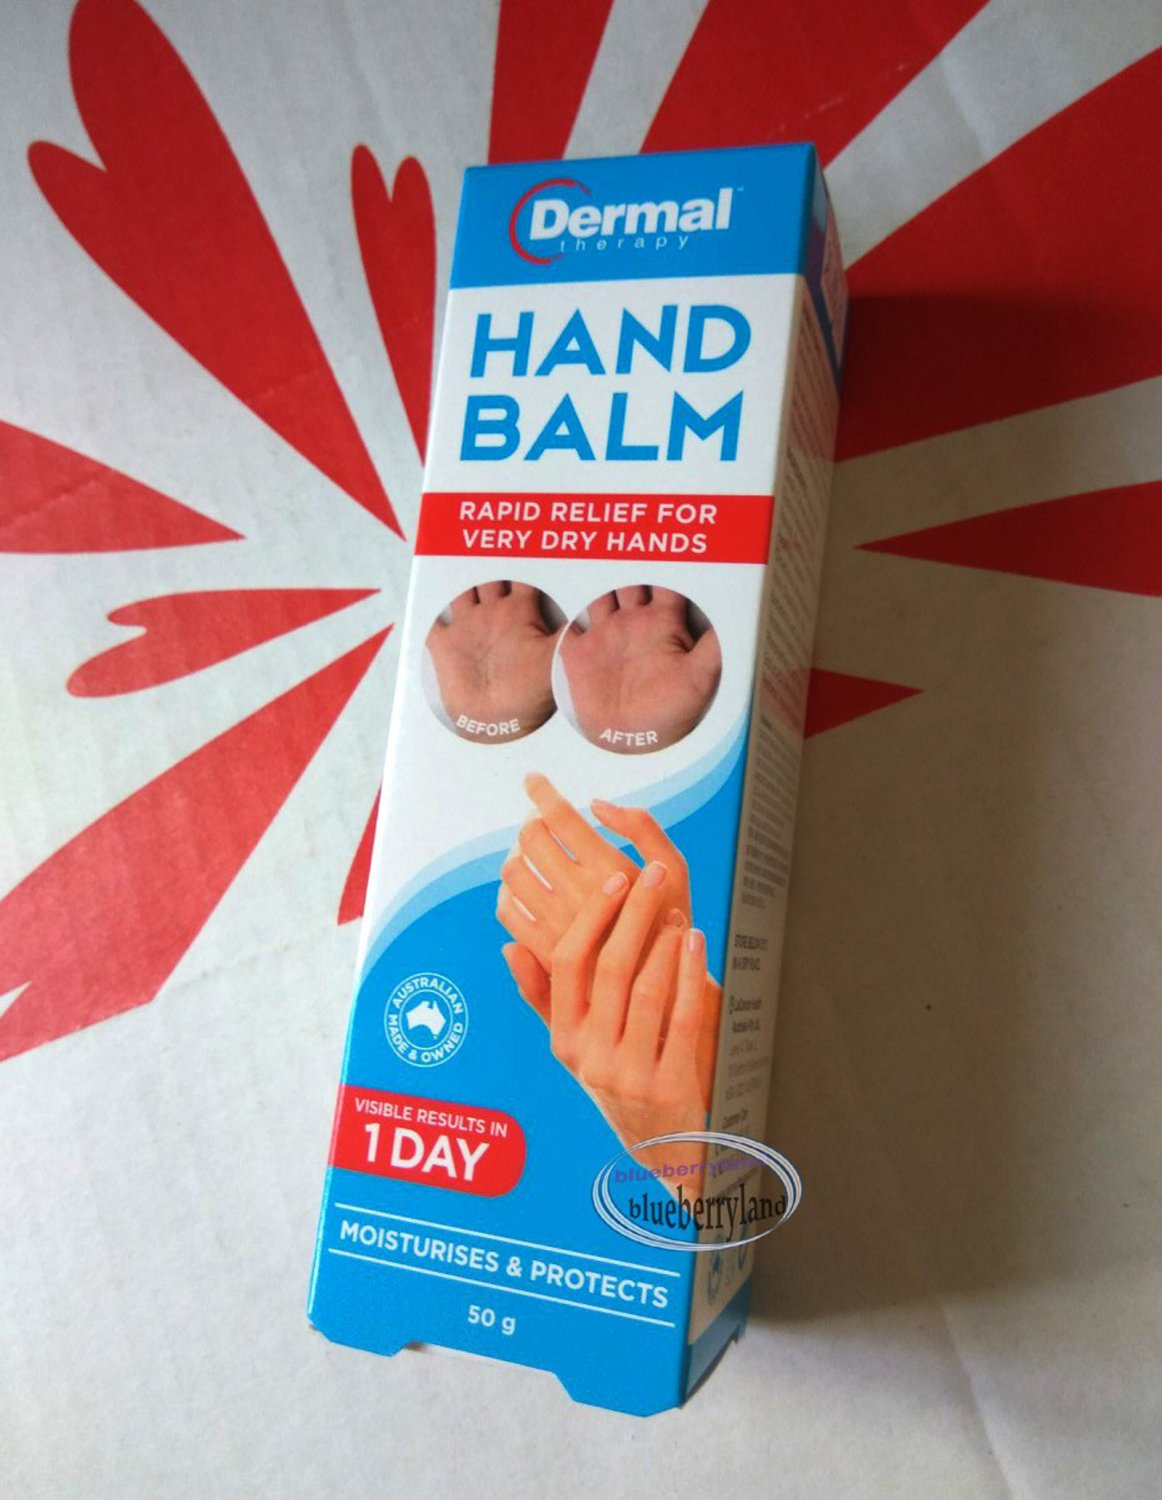 Dermal Therapy Hand Balm 50g for very dry hands skin care Health beauty ladies working hands